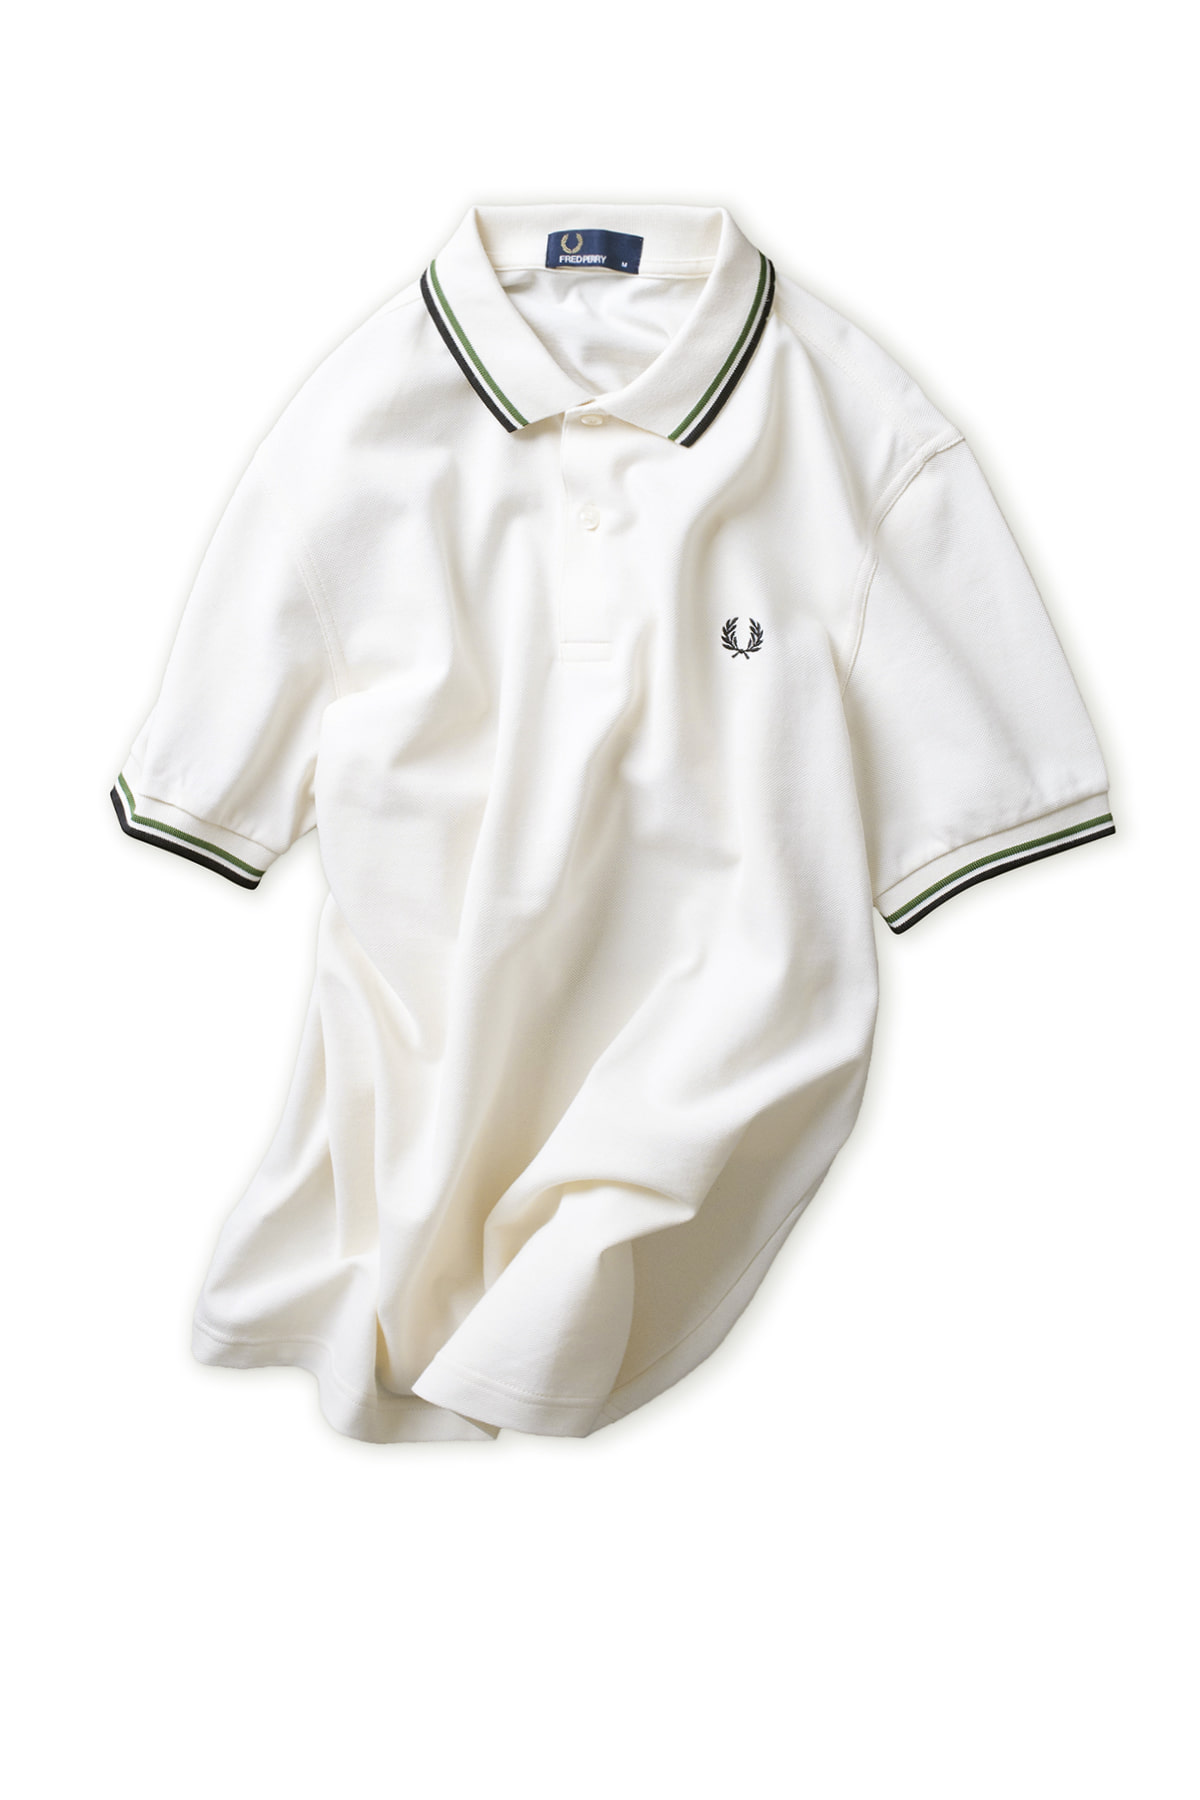 FRED PERRY : Twin Tipped Fred Perry Shirt (Ecru/Verde/Black)